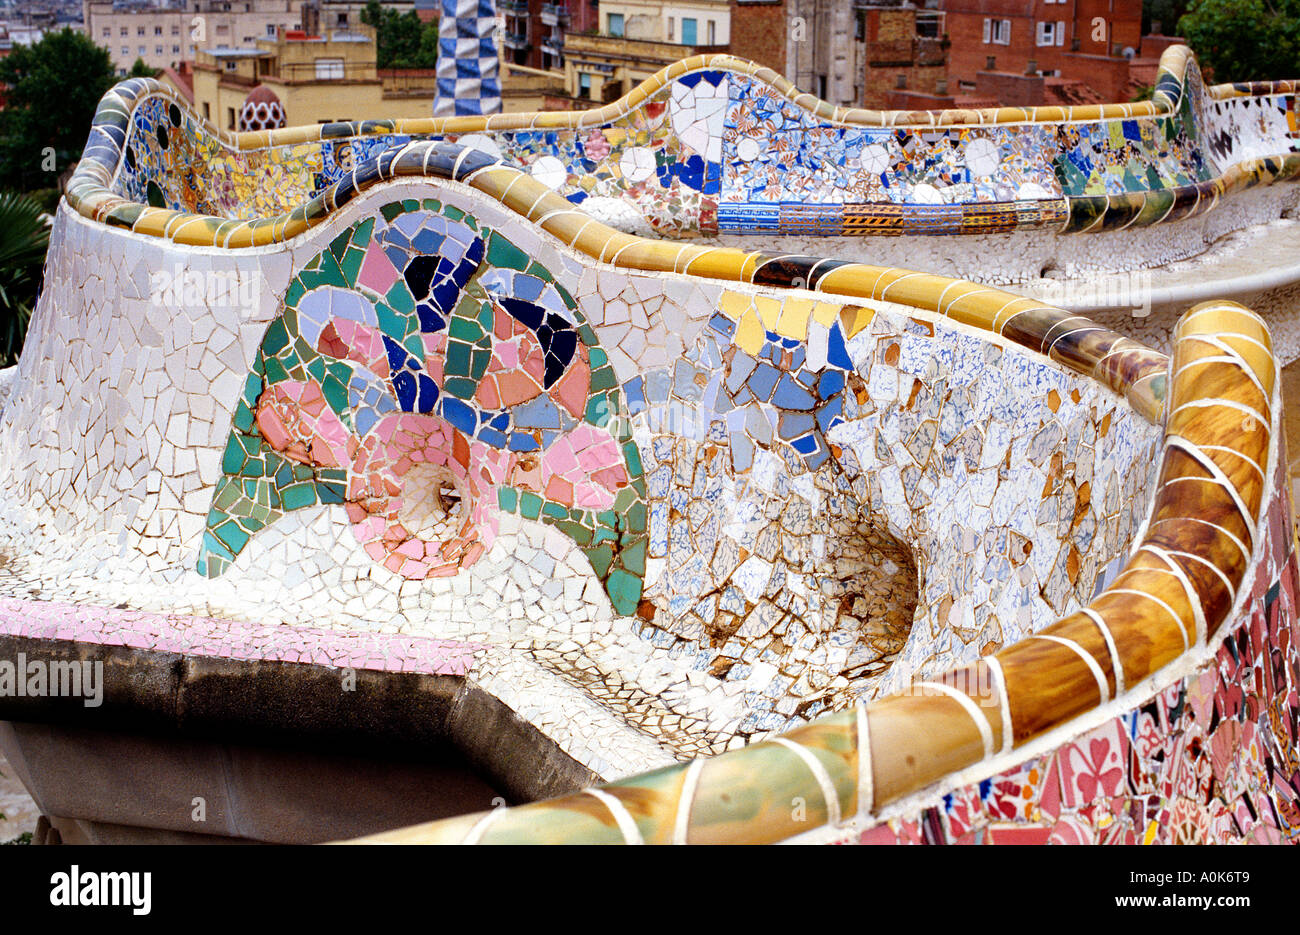 Gaudi Colourful Mosaic Tiles at the ' Park Guell ' in  Barcelona. Spain. - Stock Image